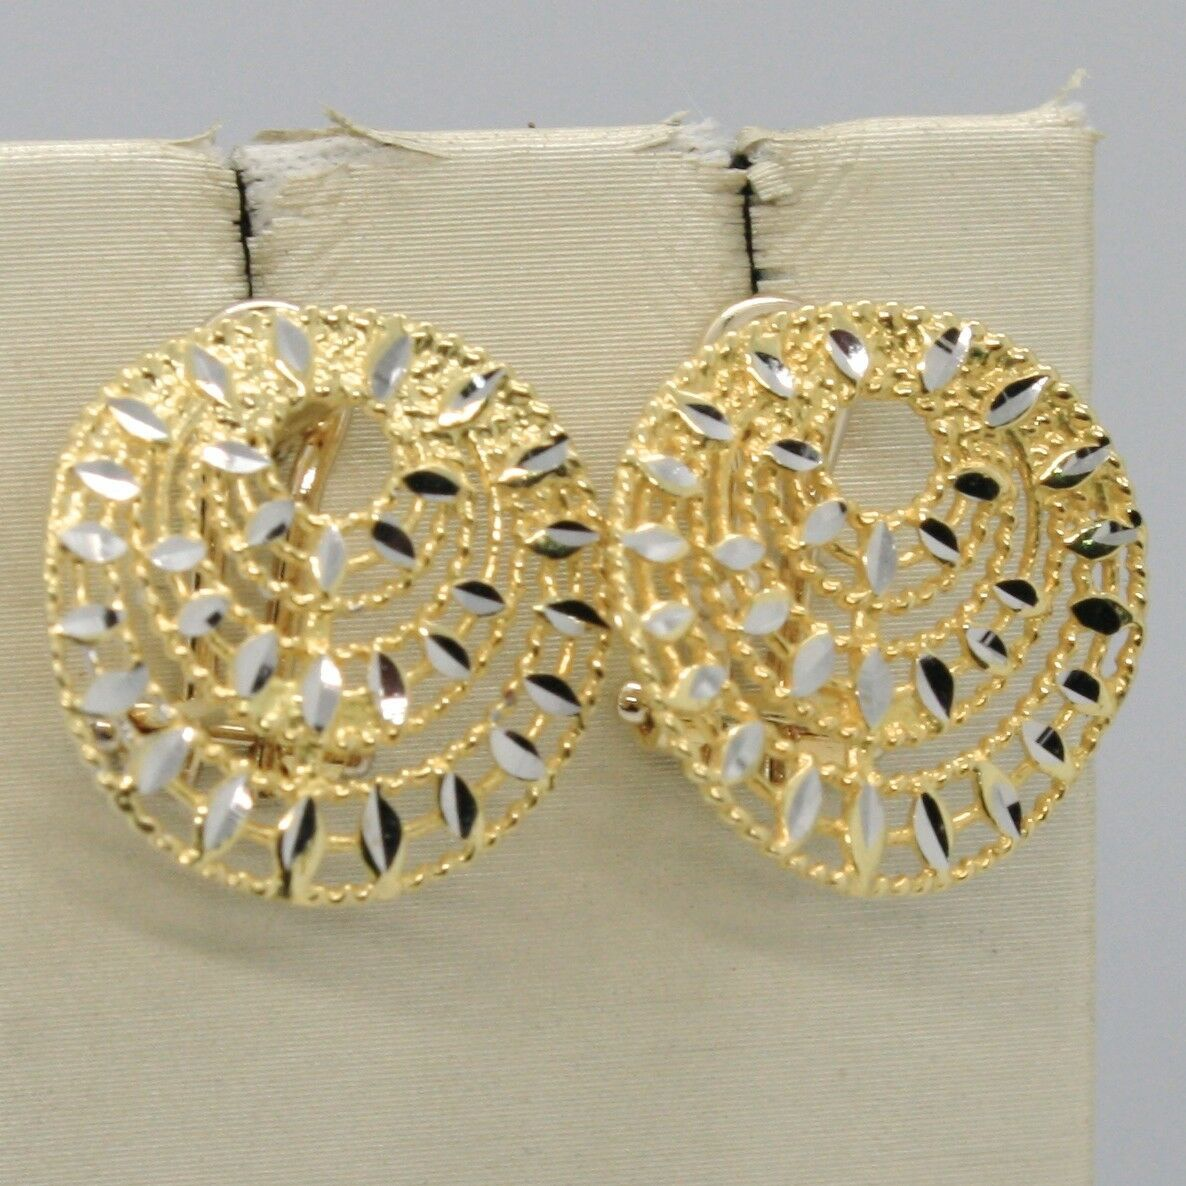 18K YELLOW GOLD ROUND BUTTON EARRINGS, FINELY WORKED AND ONDULATE, MADE IN ITALY